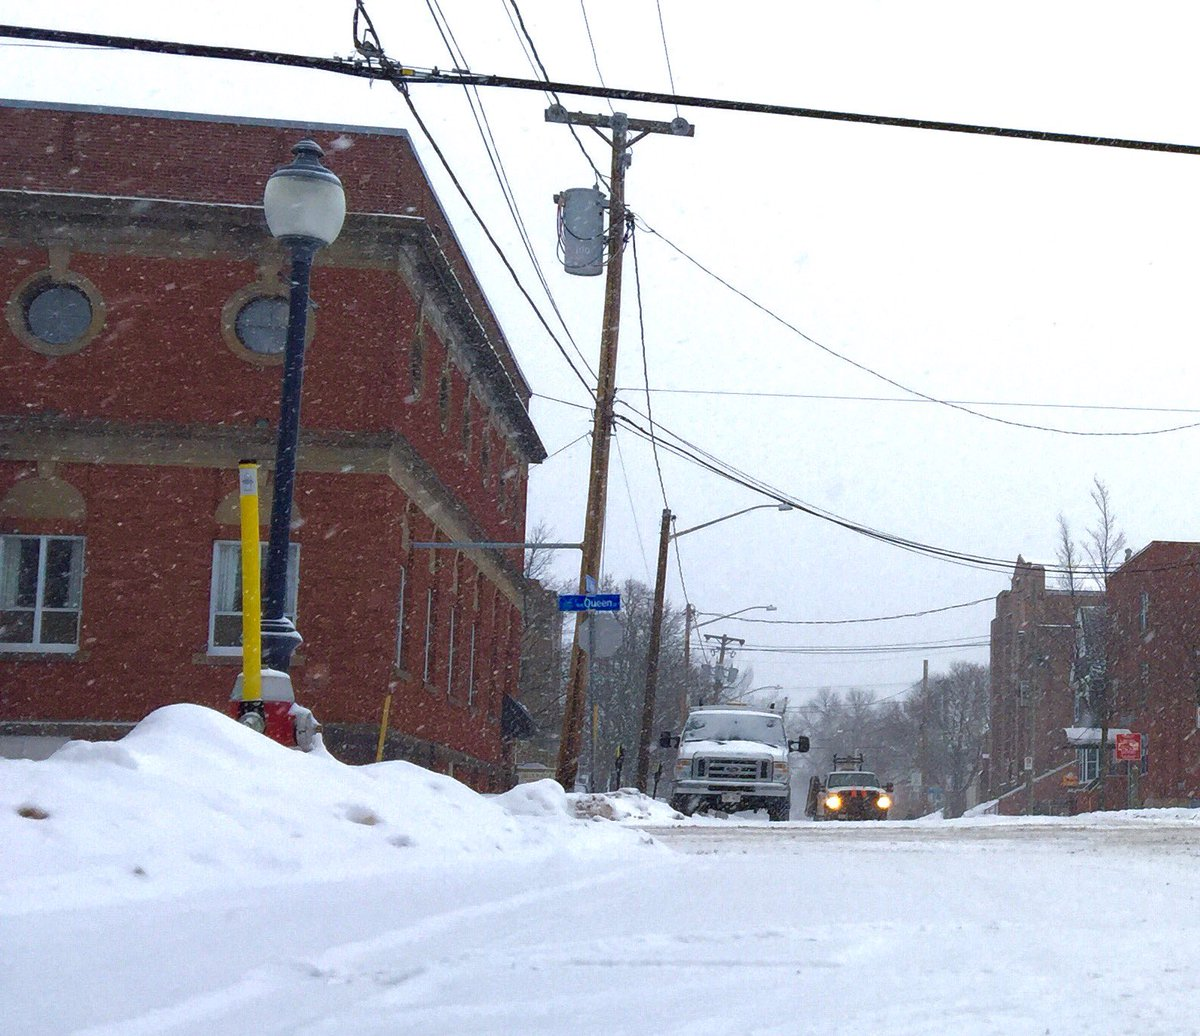 Big snowflakes still falling in Moncton. Slippery driving throughout NS & NB today.